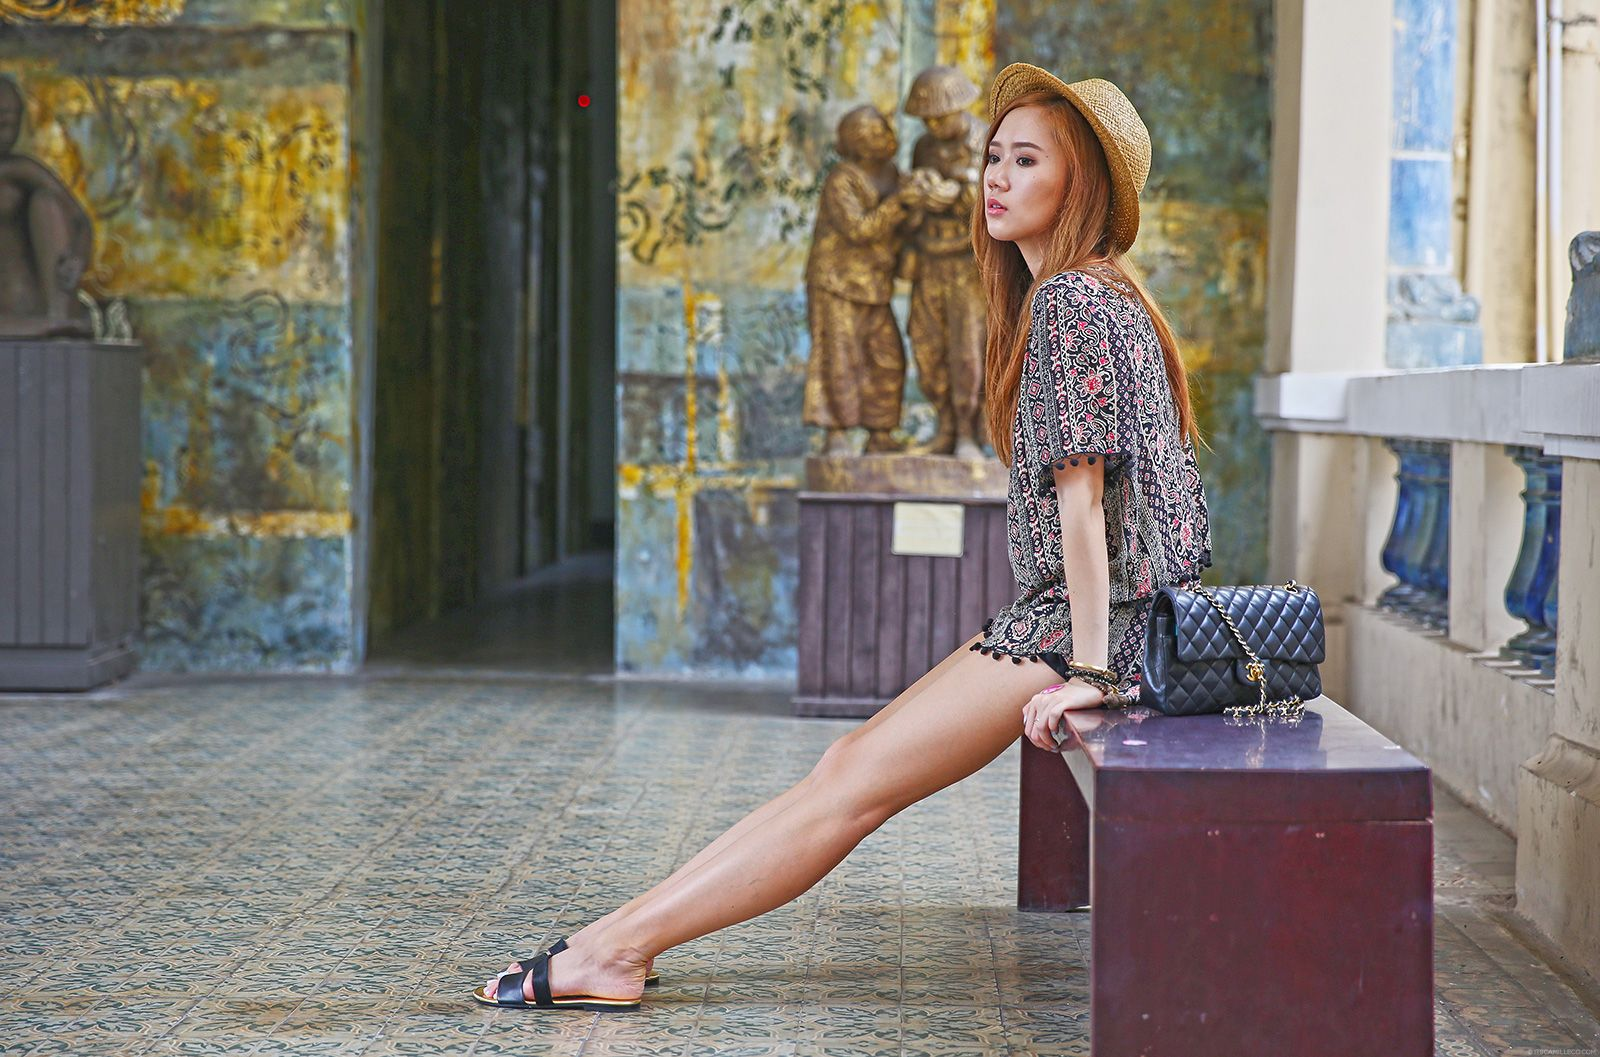 Boohoo Fashion at Fine Arts Museum, Vietnam - www.itscamilleco.com